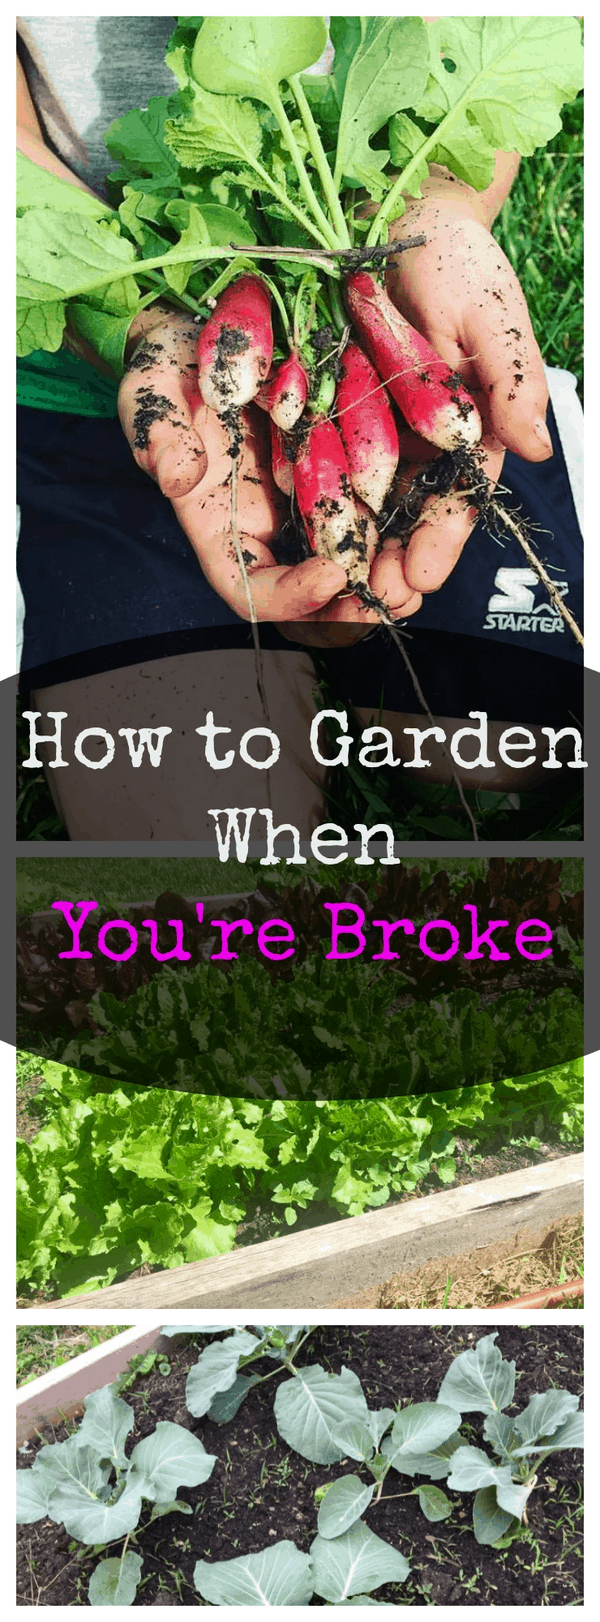 How to Garden When You're Broke